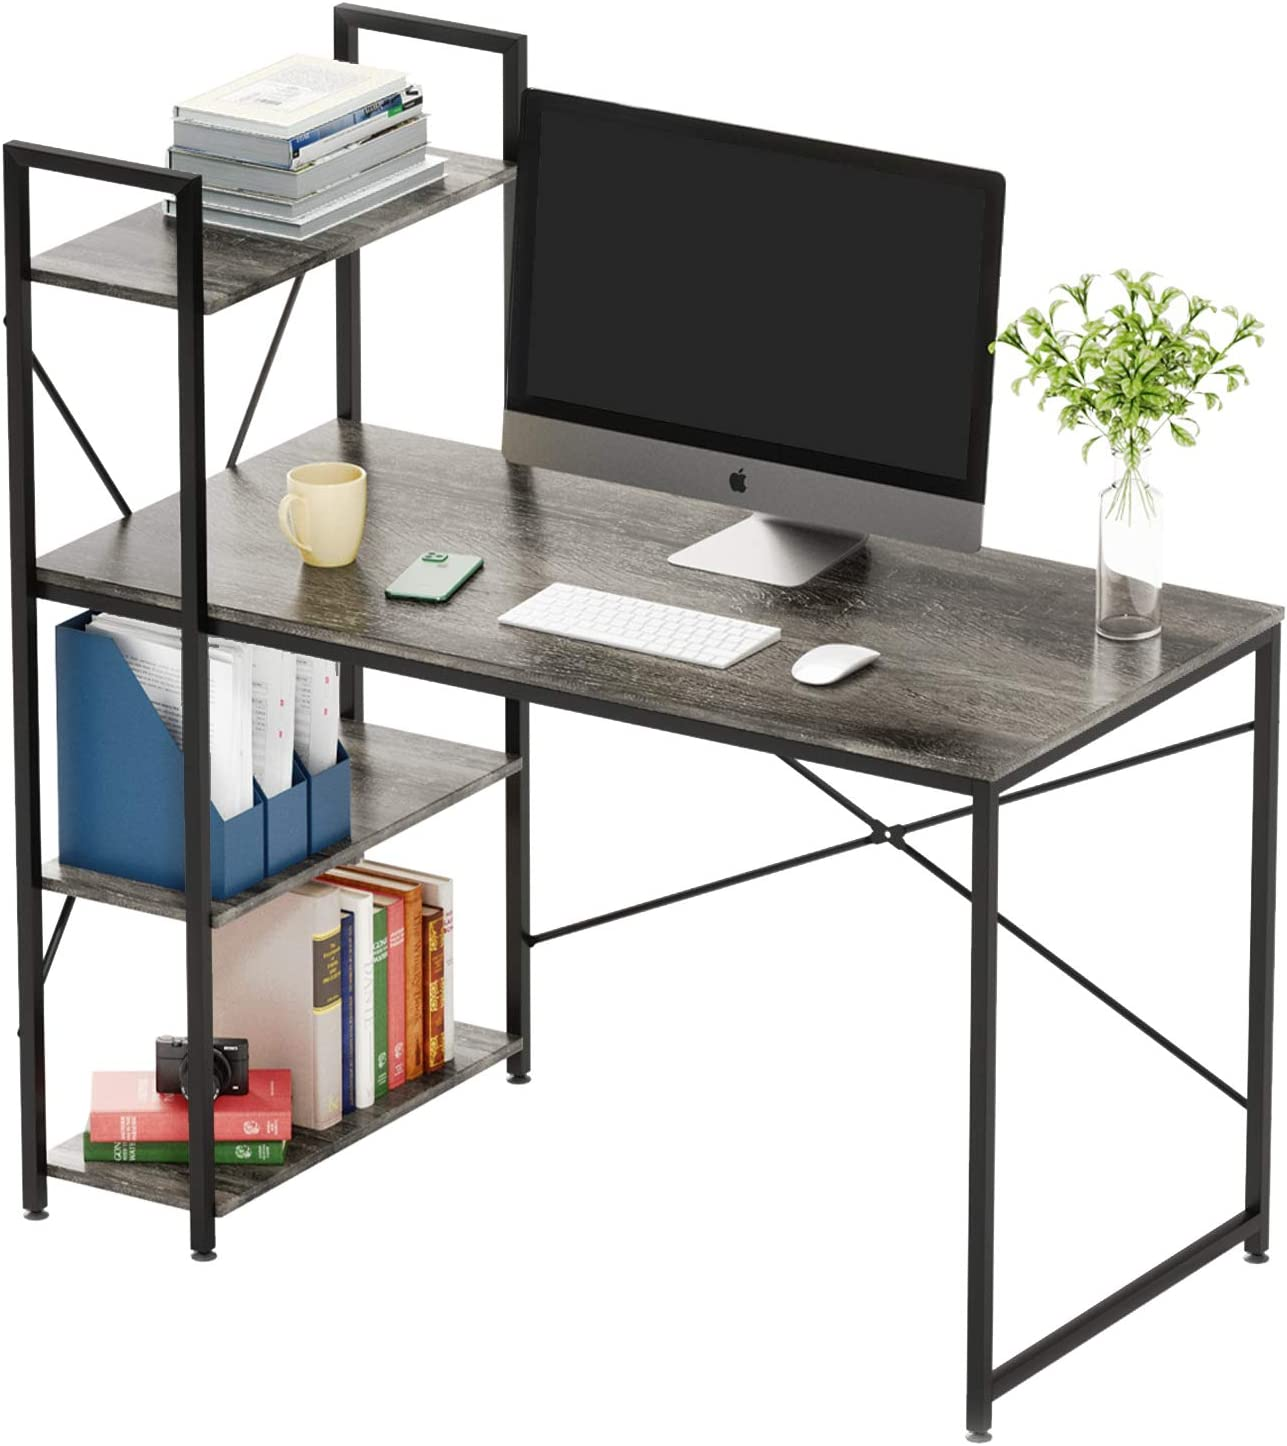 Bestier Computer Desk with Shelves,Writing Desk with Storage Bookshelf Reversible Study Table Office Corner Desk with Shelves Home Office Desk with Bookshelf Easy Assemble (47 Inch, Grey)